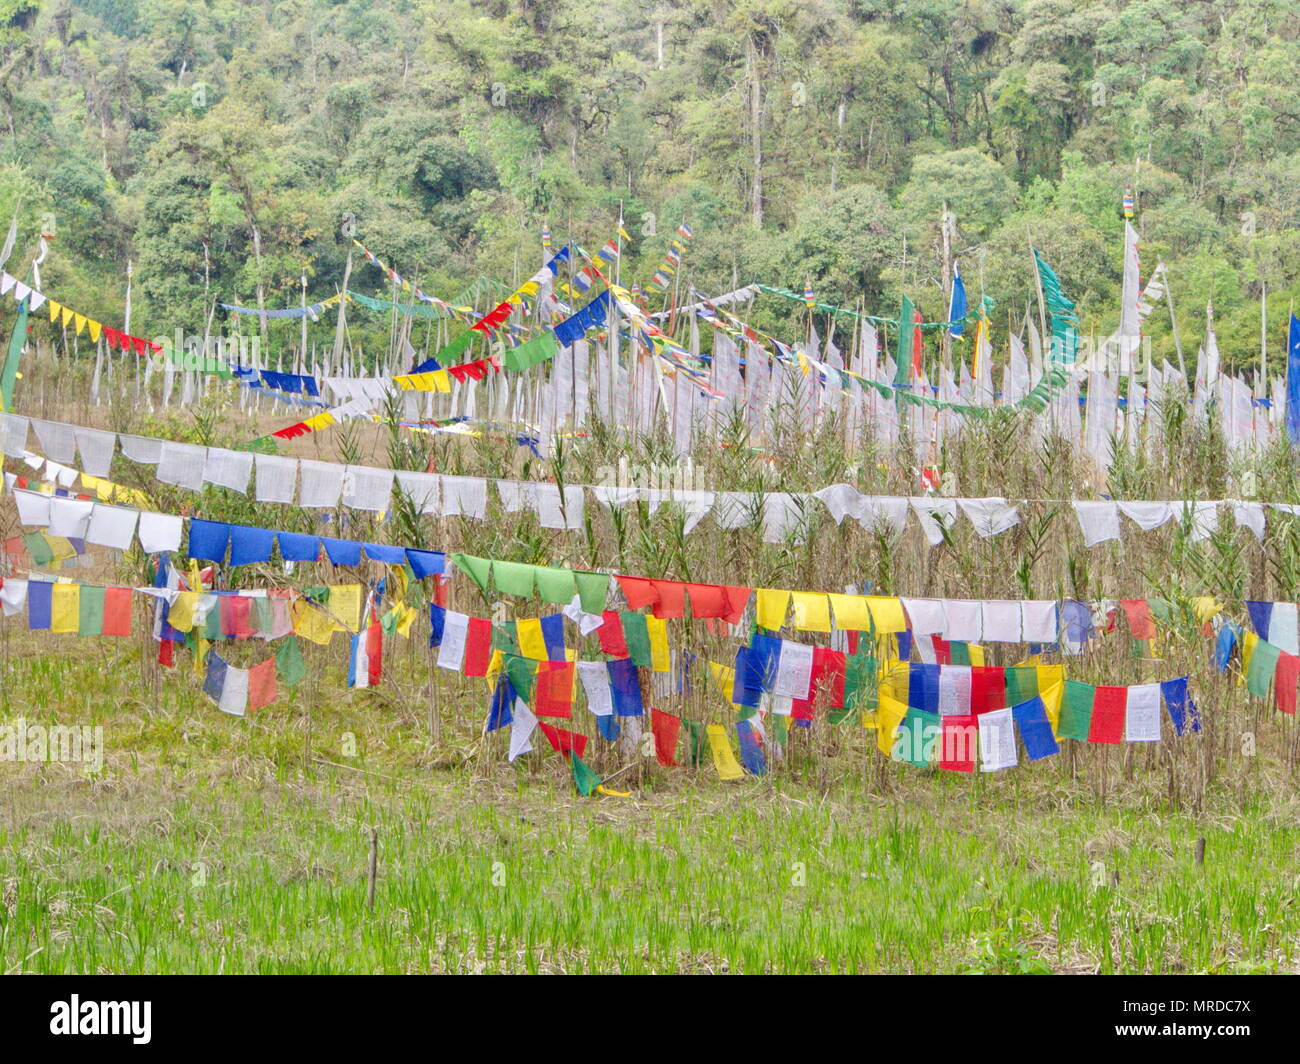 Tibetan Prayer Flag for Faith, peace, wisdom, compassion